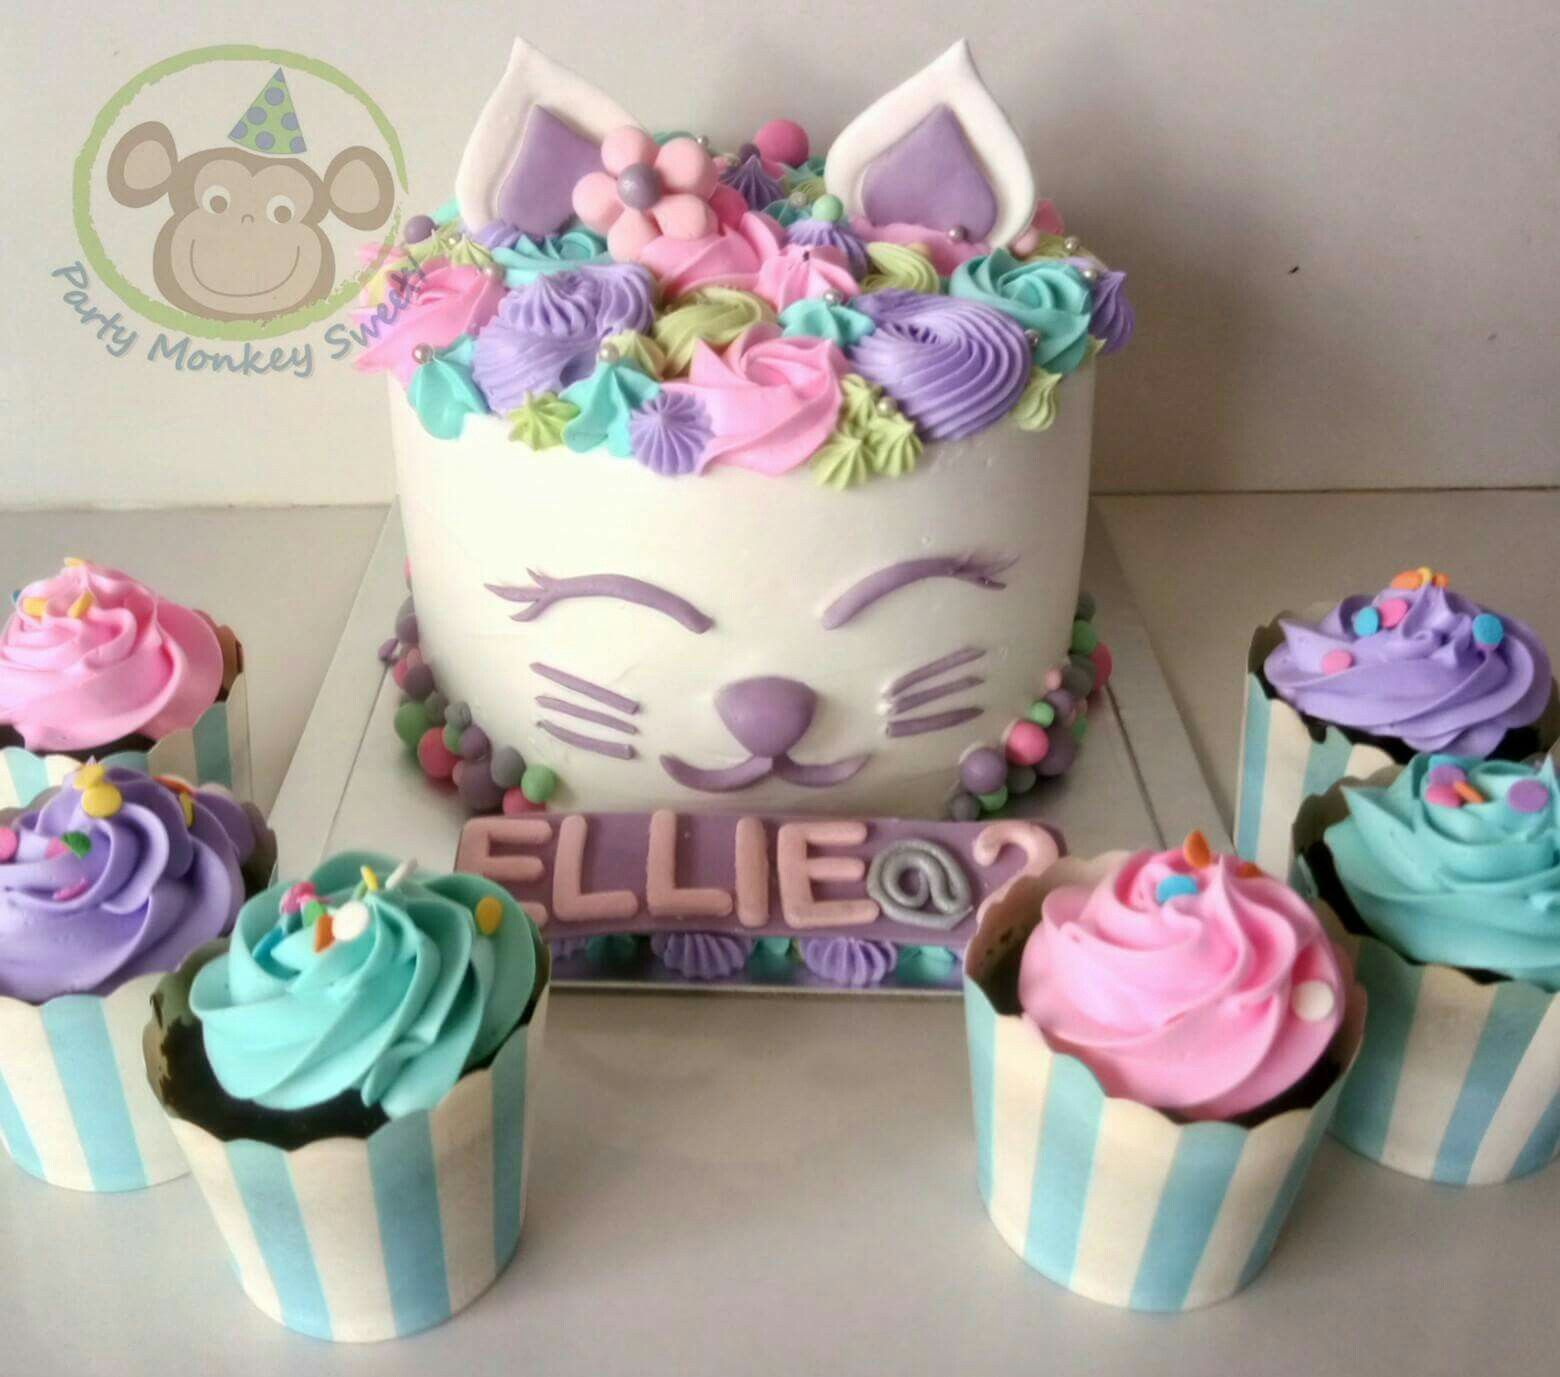 Kitty birthday cake cat cake kitten cake Shelbys Bday Pinterest